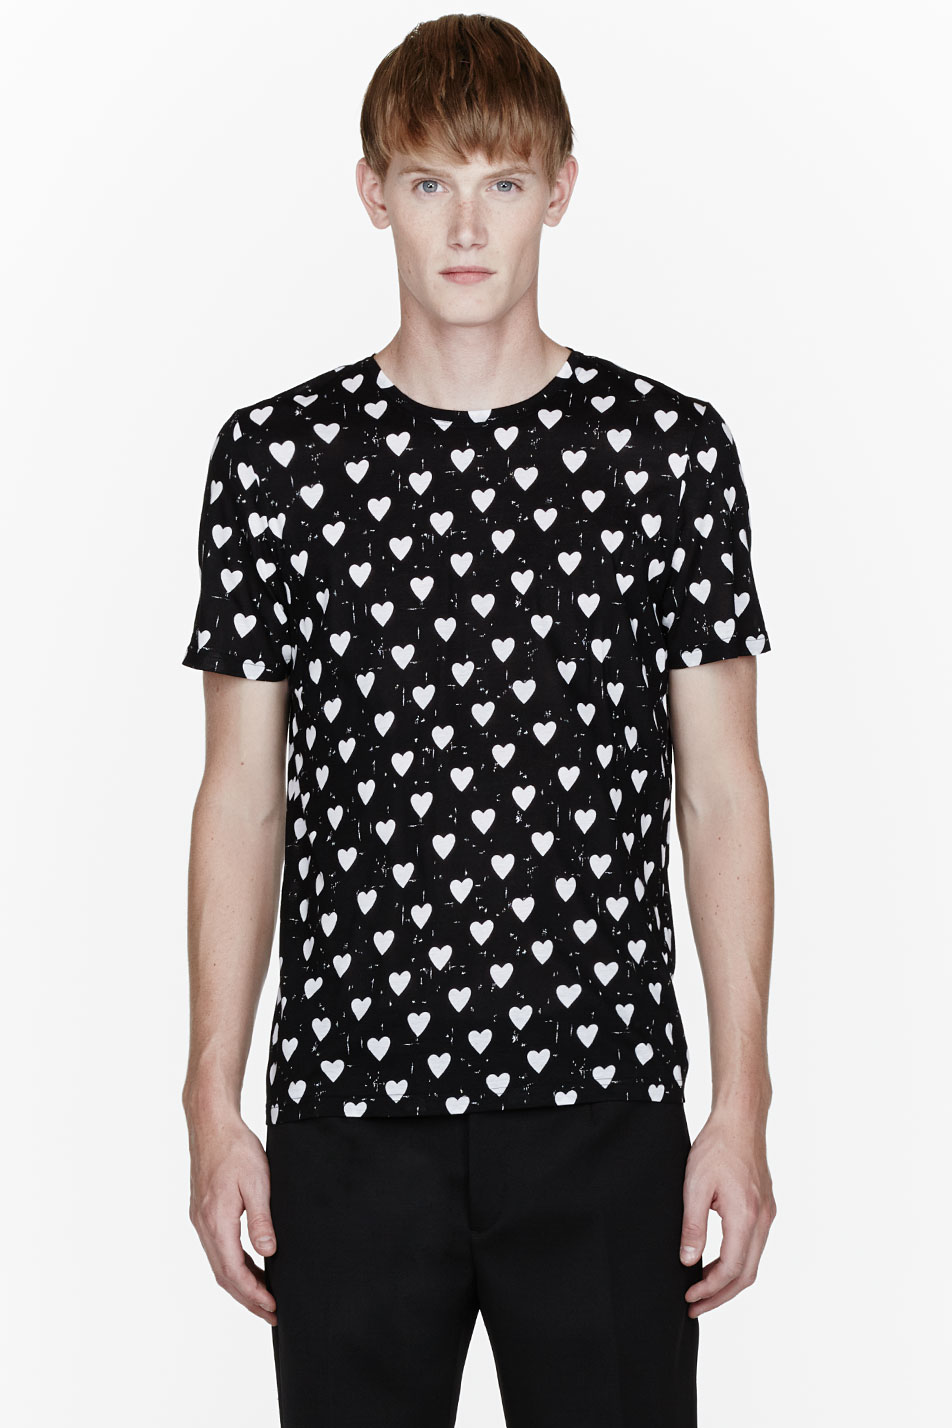 burberry prorsum black and white heart print t shirt in. Black Bedroom Furniture Sets. Home Design Ideas